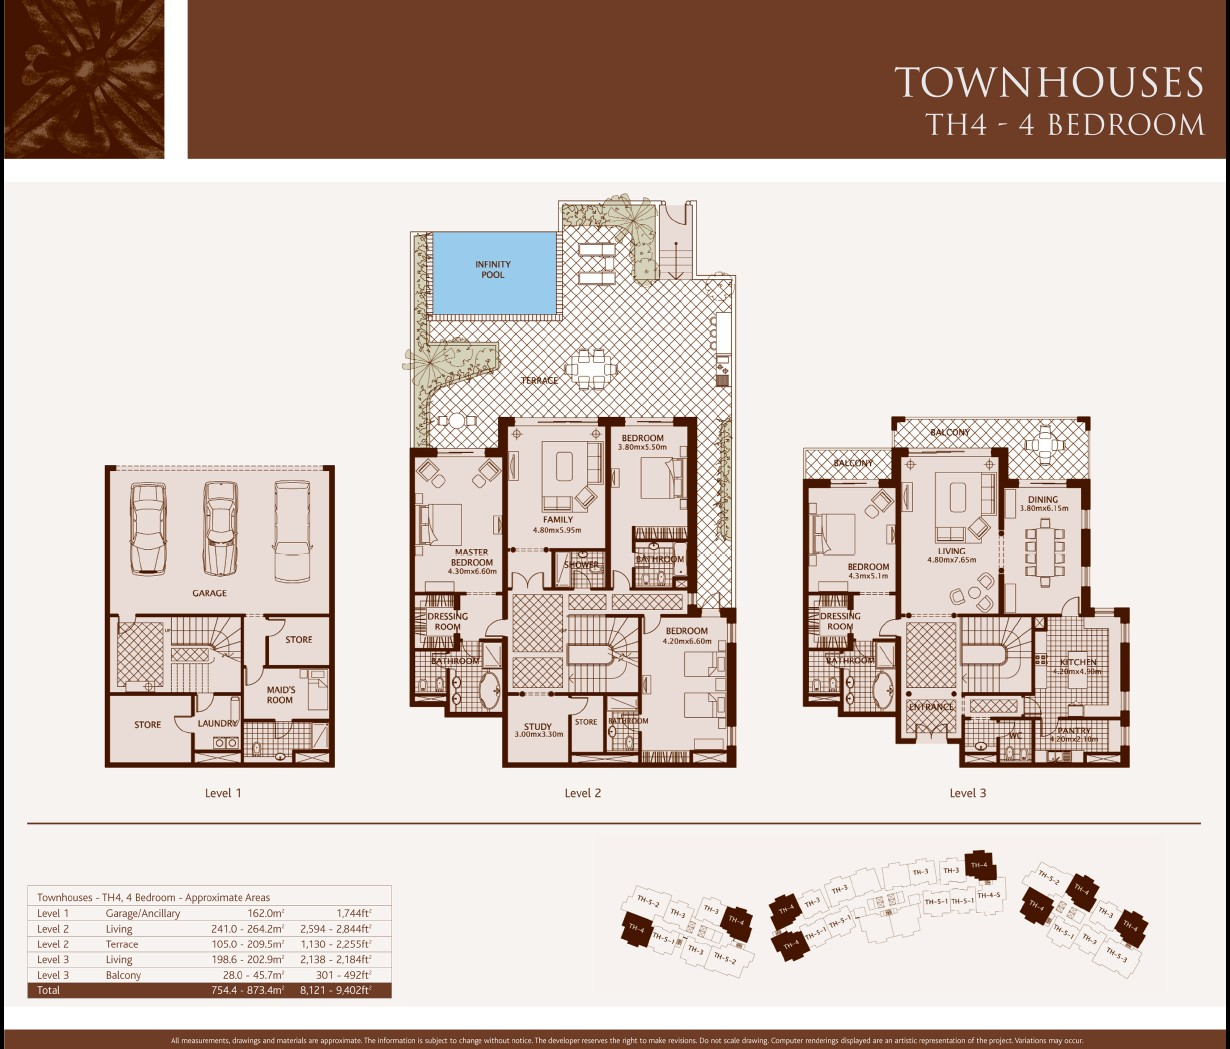 Townhouse floor plans for waterview at willowpoint for 3 bedroom townhouse